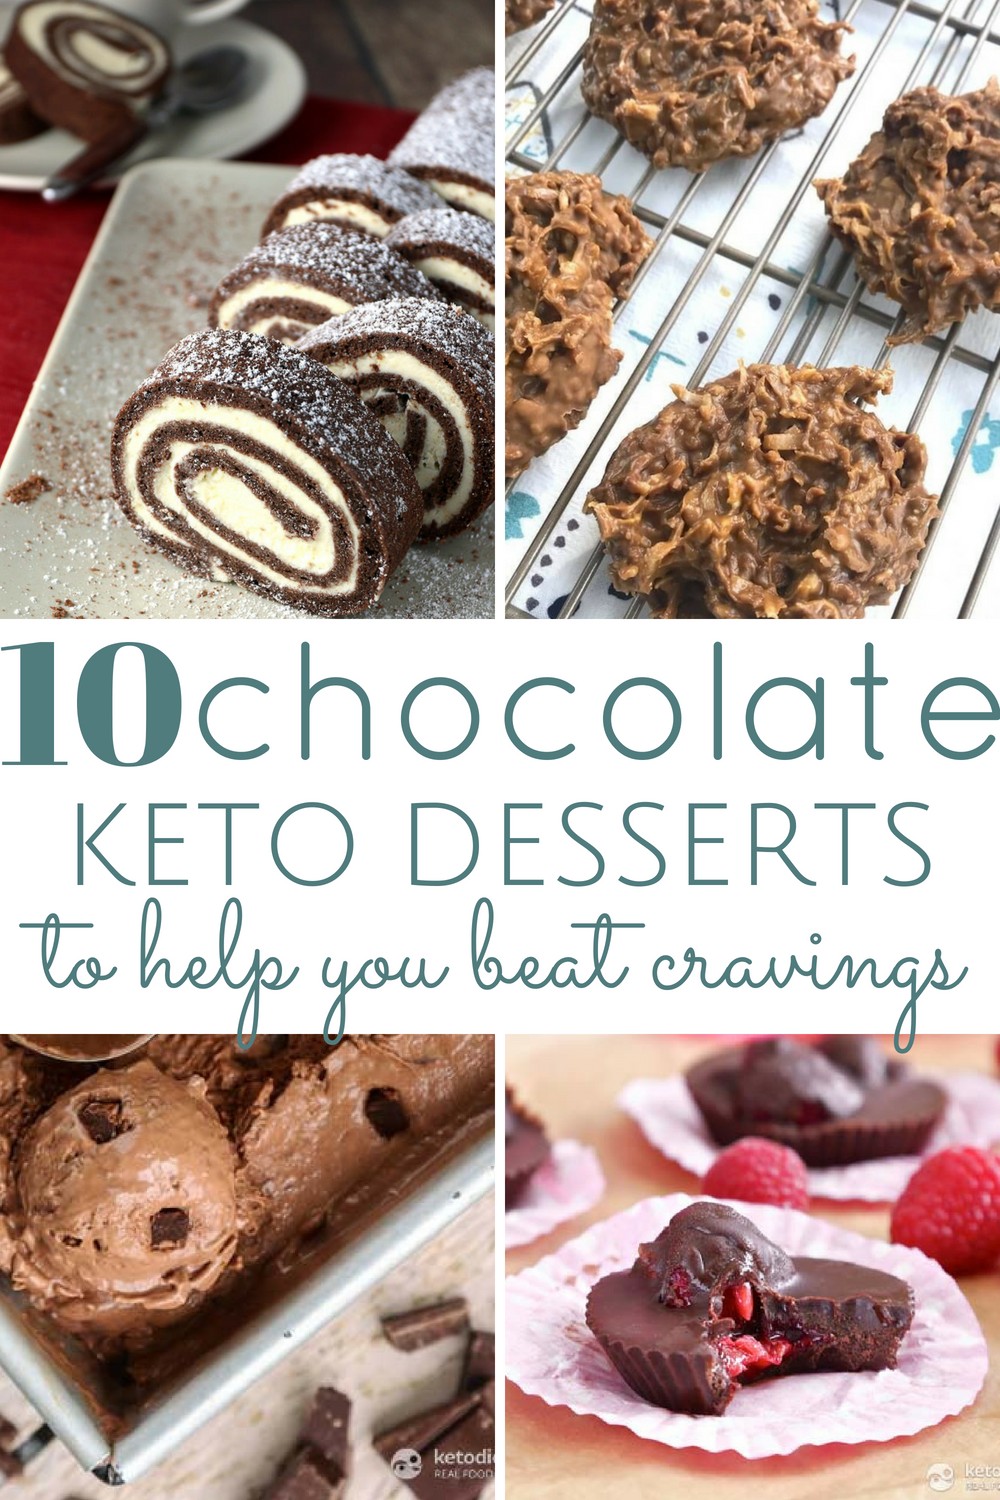 keto chocolate, keto chocolate fat bombs, keto chocolate desserts, keto sugar cravings, how to beat keto cravings, keto chocolate chip cookies, keto chocolate drinks, keto chocolate cake, keto chocolate recipes, keto diet, easy keto chocolate, quick keto desserts, keto desserts for one